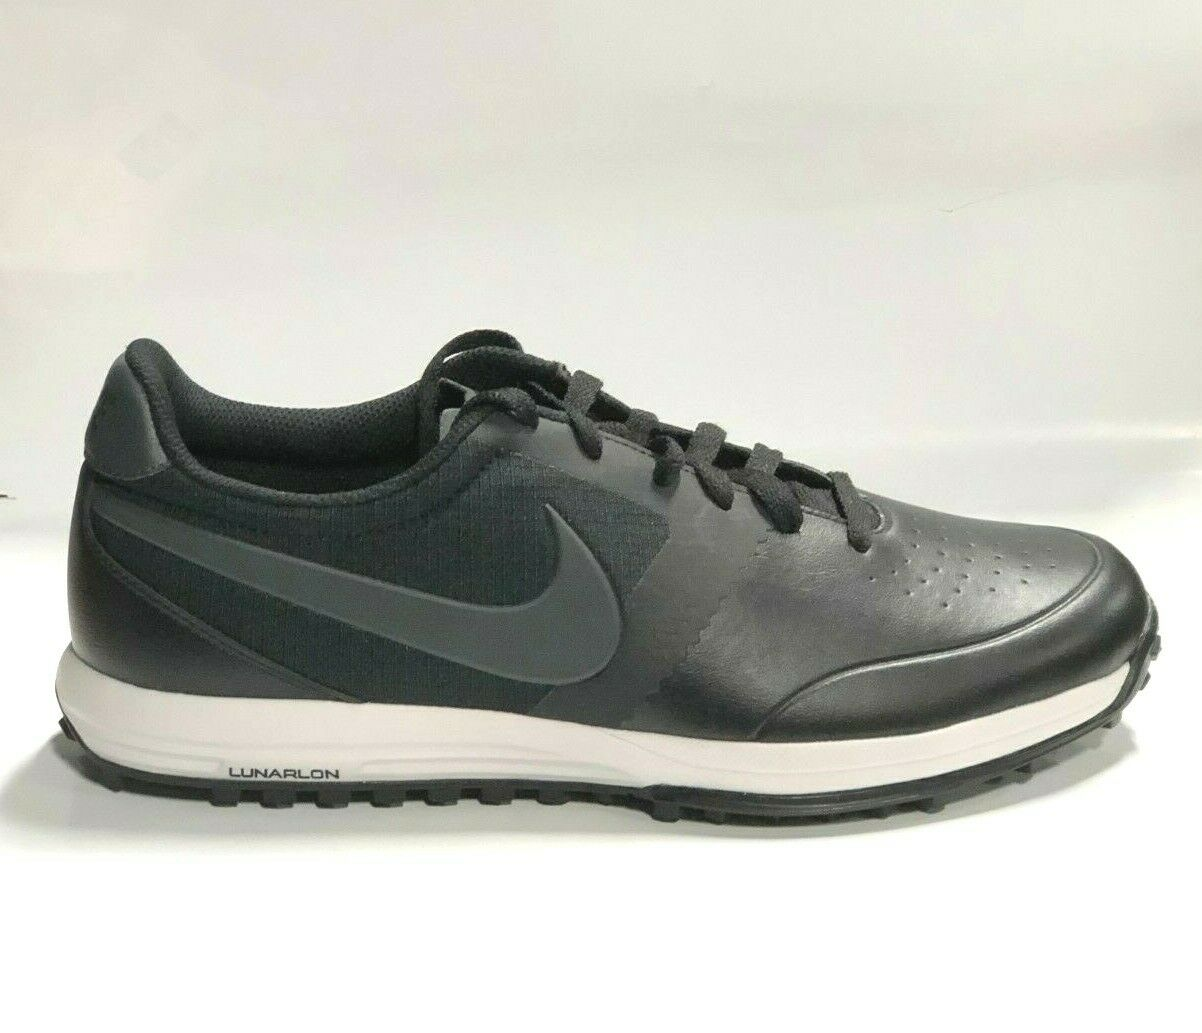 ee131959e4162 NIKE MEN S LUNAR LUNAR LUNAR (652530-001) COLOR BLACK WHITE GREY f6a73f